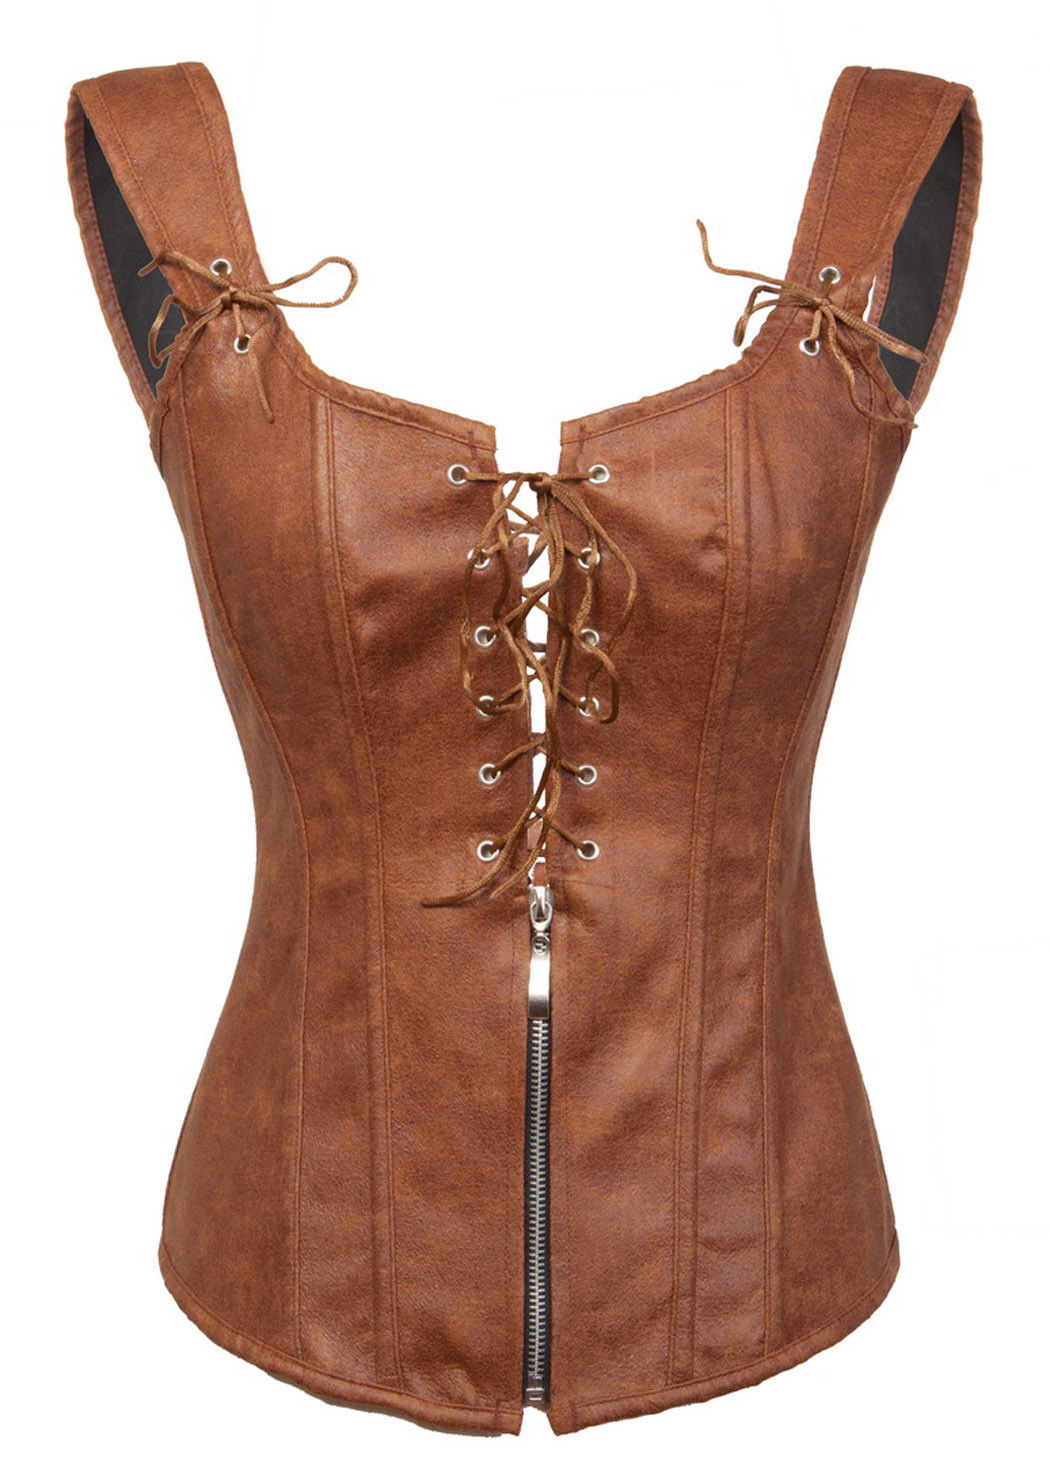 Brown Leather Shoulder Straps Goth Steampunk Waist Training Overbust Corset Top